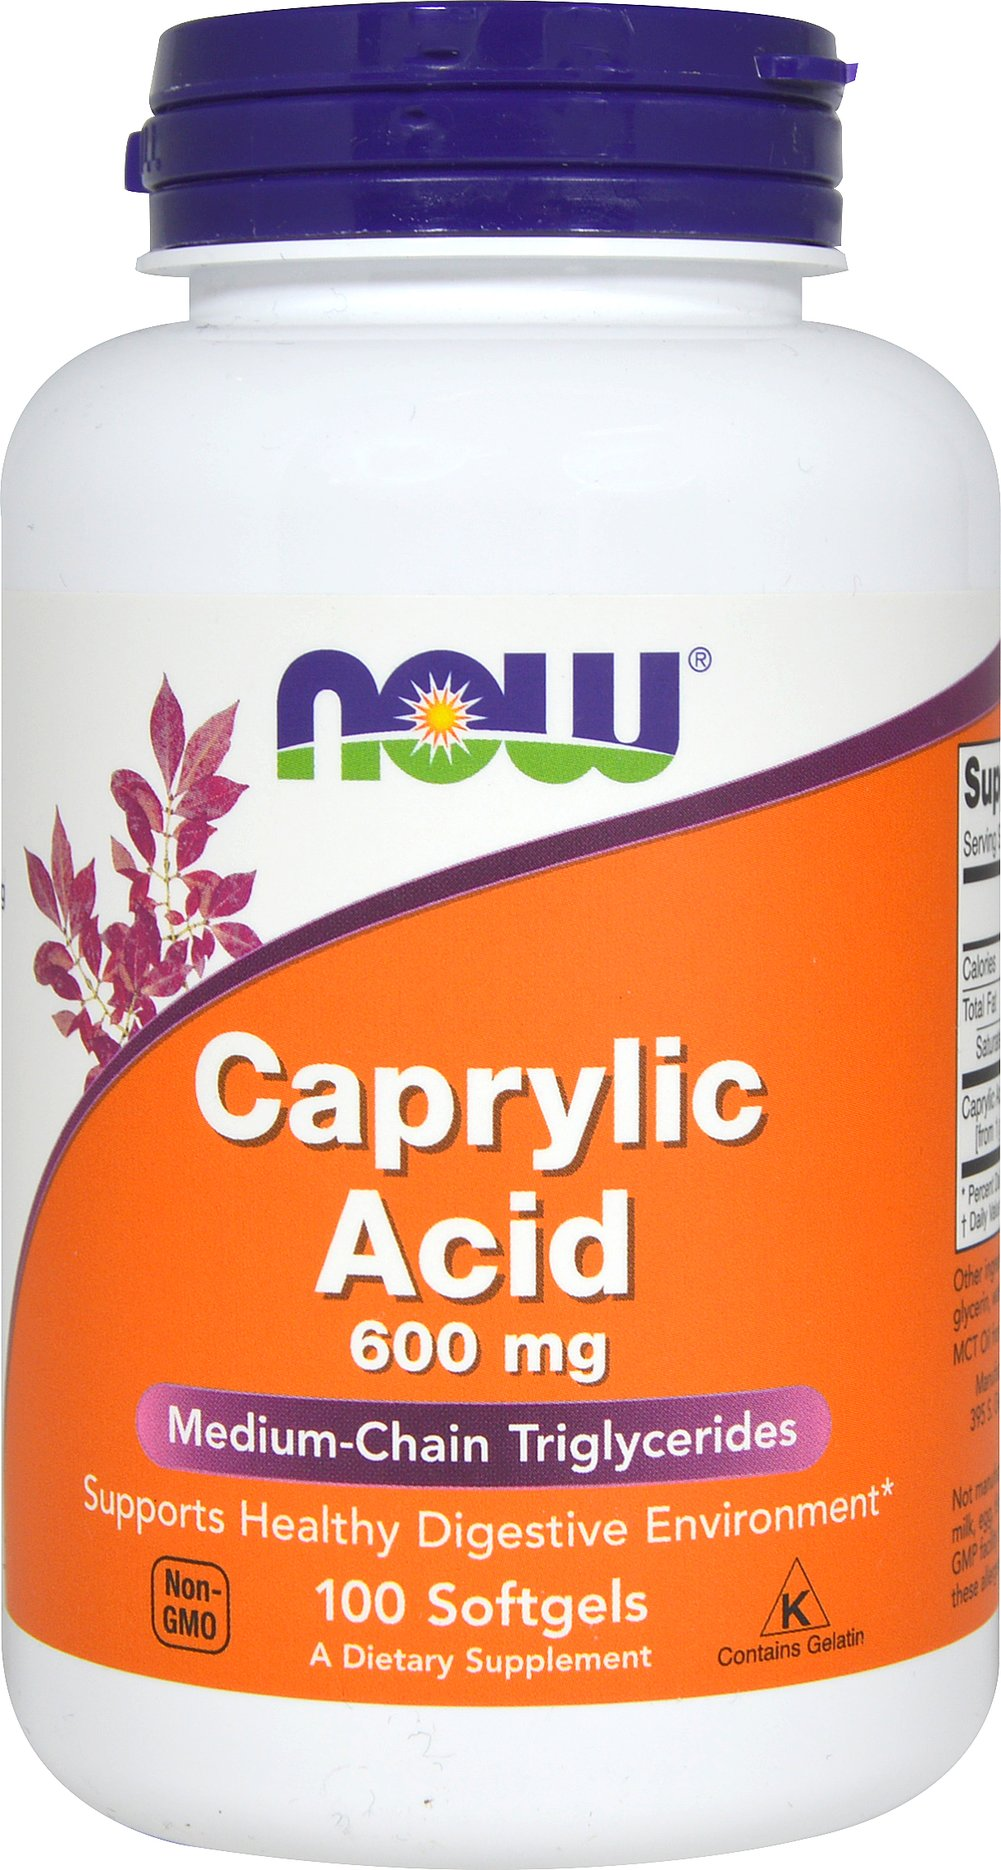 Caprylic Acid 600 mg <p>From the Manufacturer's Label:</p><p>NOW Caprylic Acid is a naturally derived nutrient used to support internal wellness.  Also known as octanooic acid, Caprylic Acid is a short-to-medium chain fatty acid (MCT) that is naturally found in coconut and palm kernel oil.</p><p>Manufactured by NOW® Foods</p> 100 Softgels 600 mg $8.99